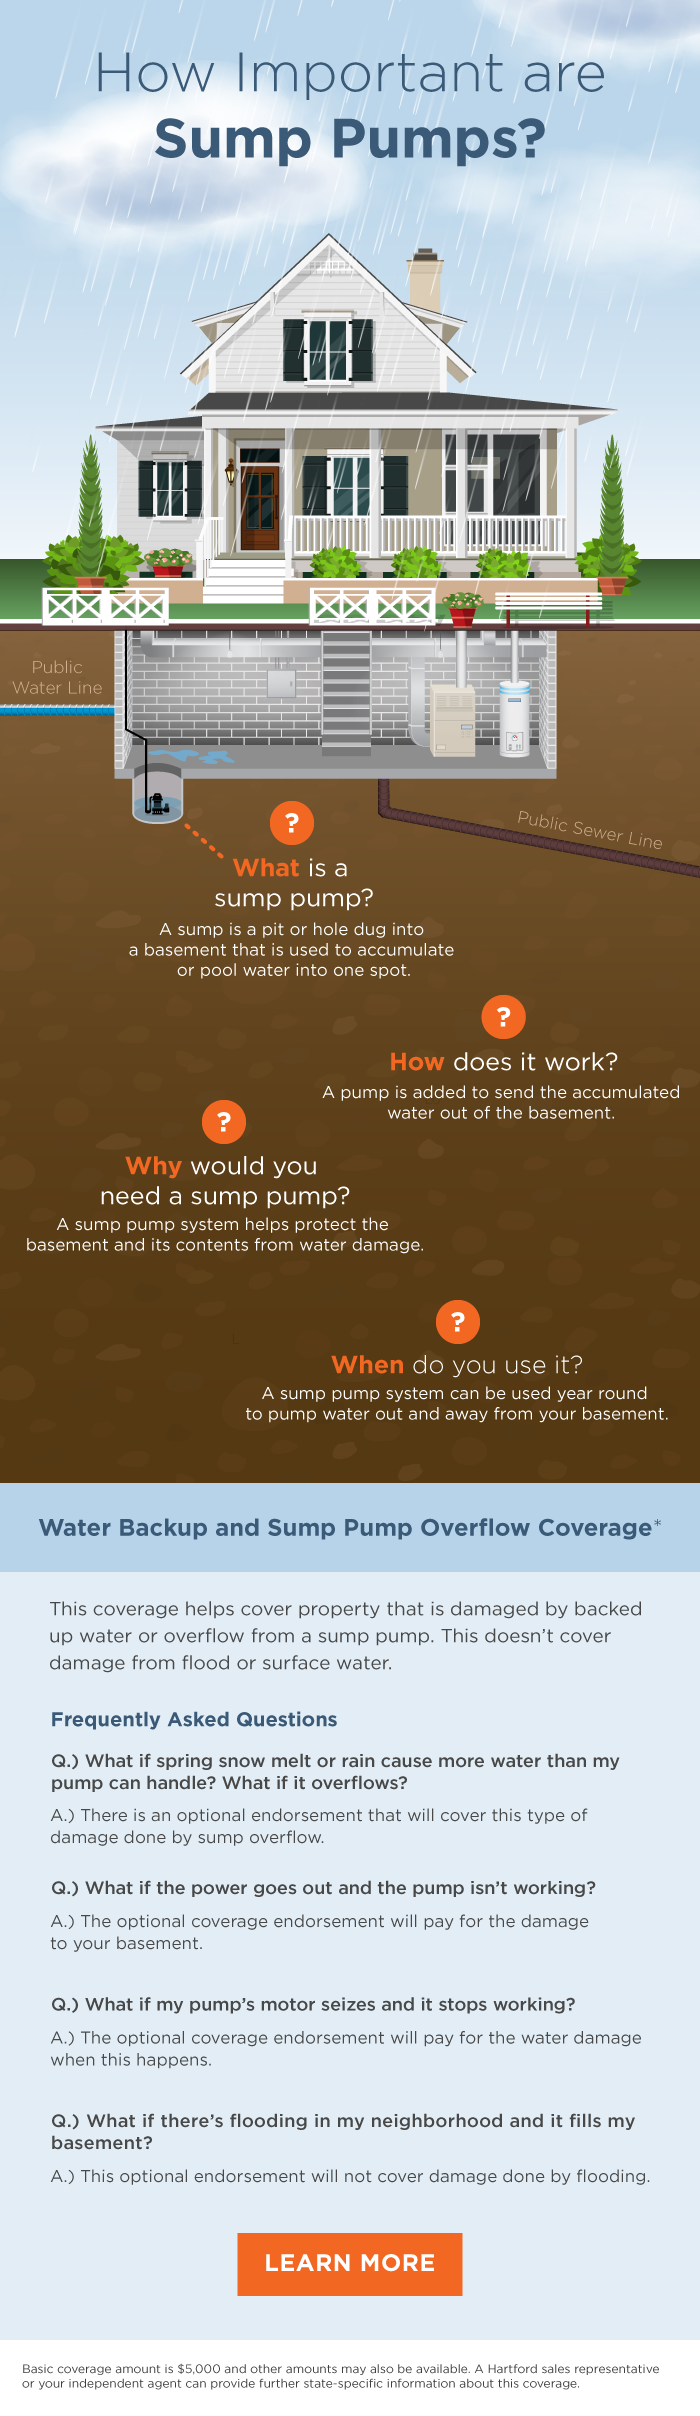 Sump Pumps and Insurance Coverage